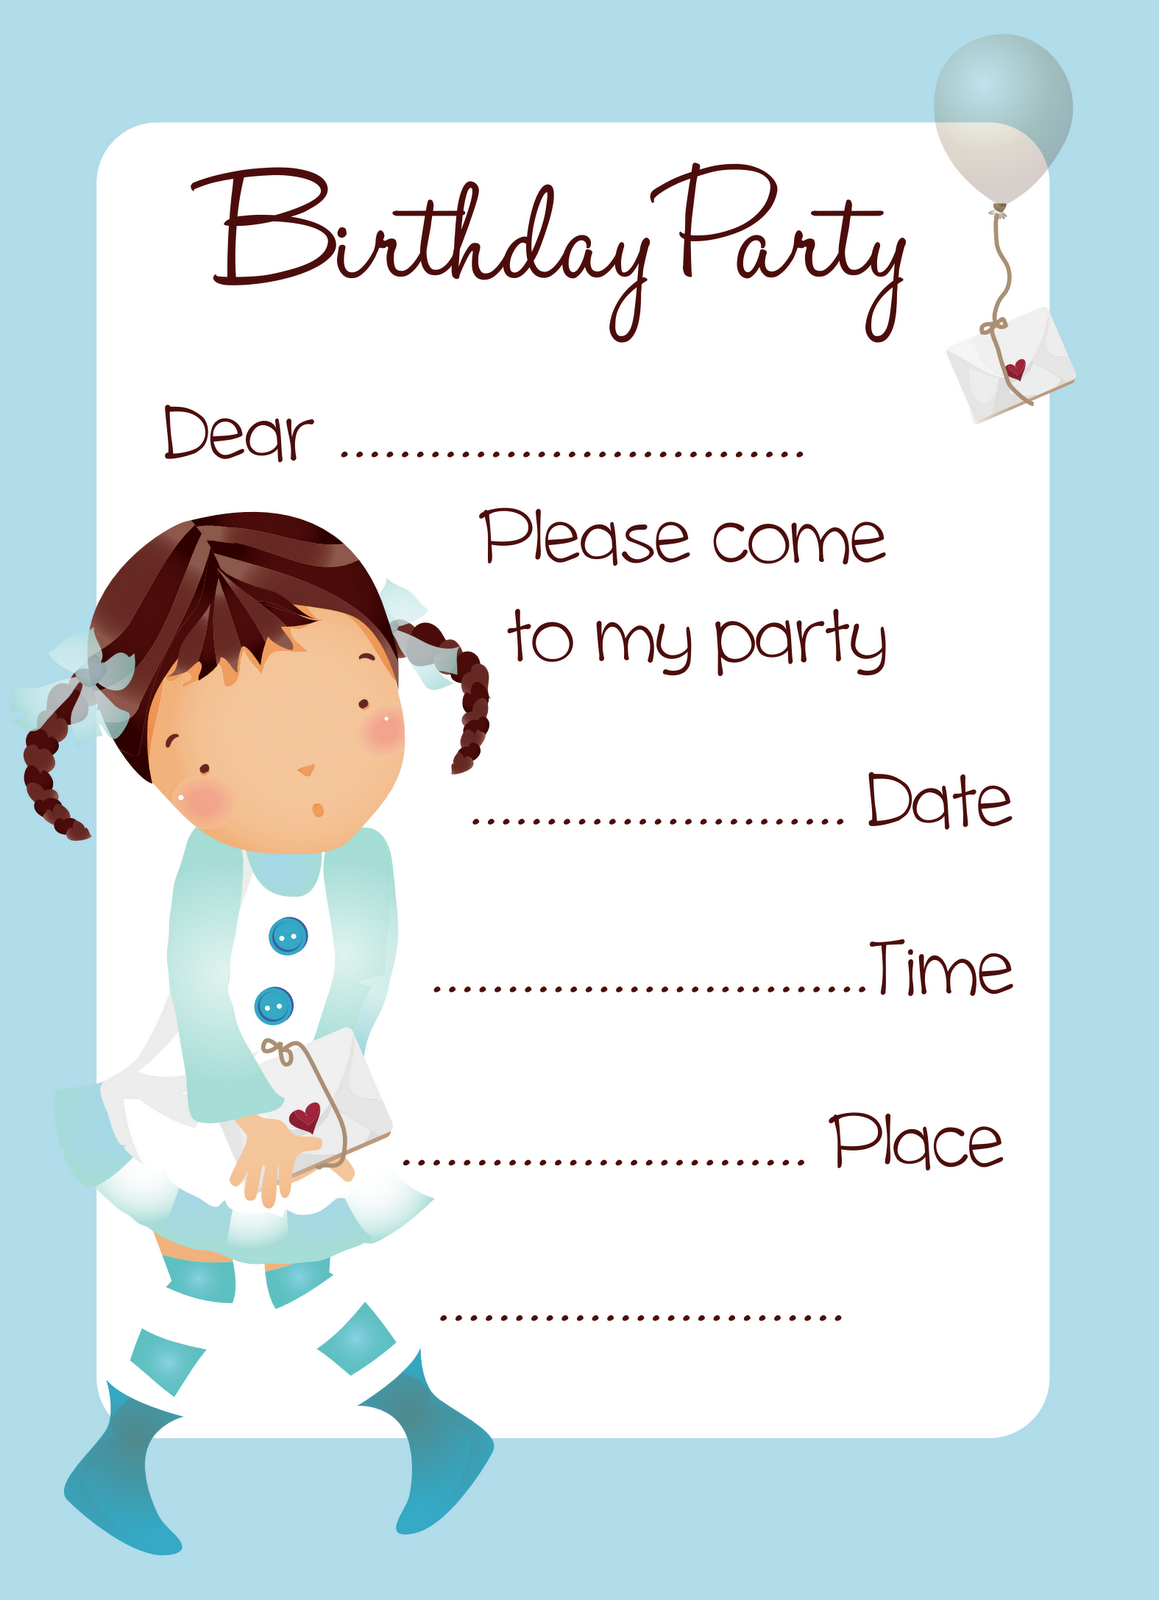 Invitation Cards For A Birthday Party – Invitation Card for a Birthday Party